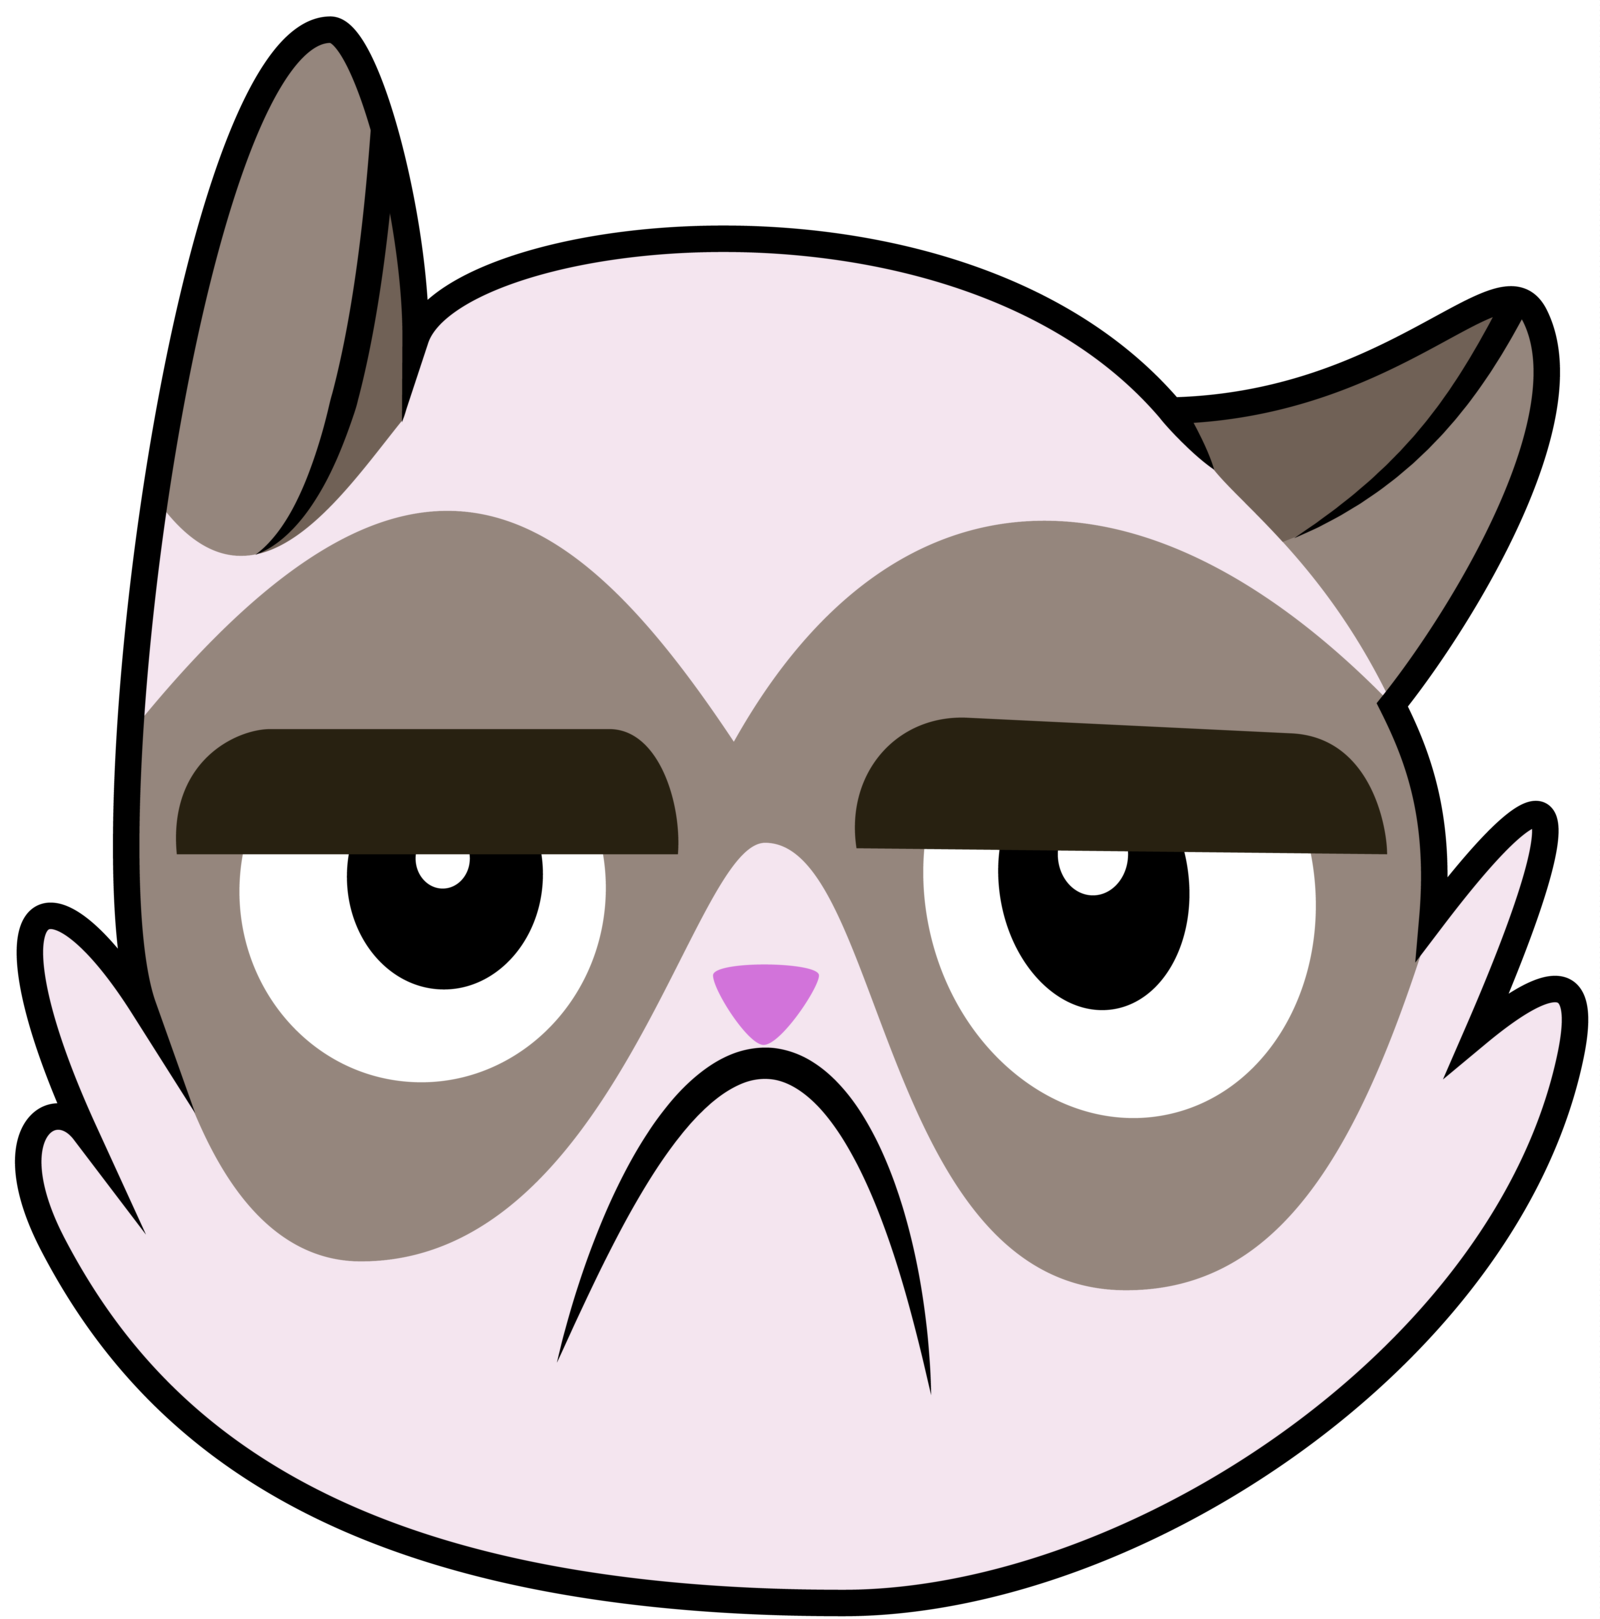 Sad cat face clipart graphic free 28+ Collection of Grumpy Cat Clipart | High quality, free cliparts ... graphic free